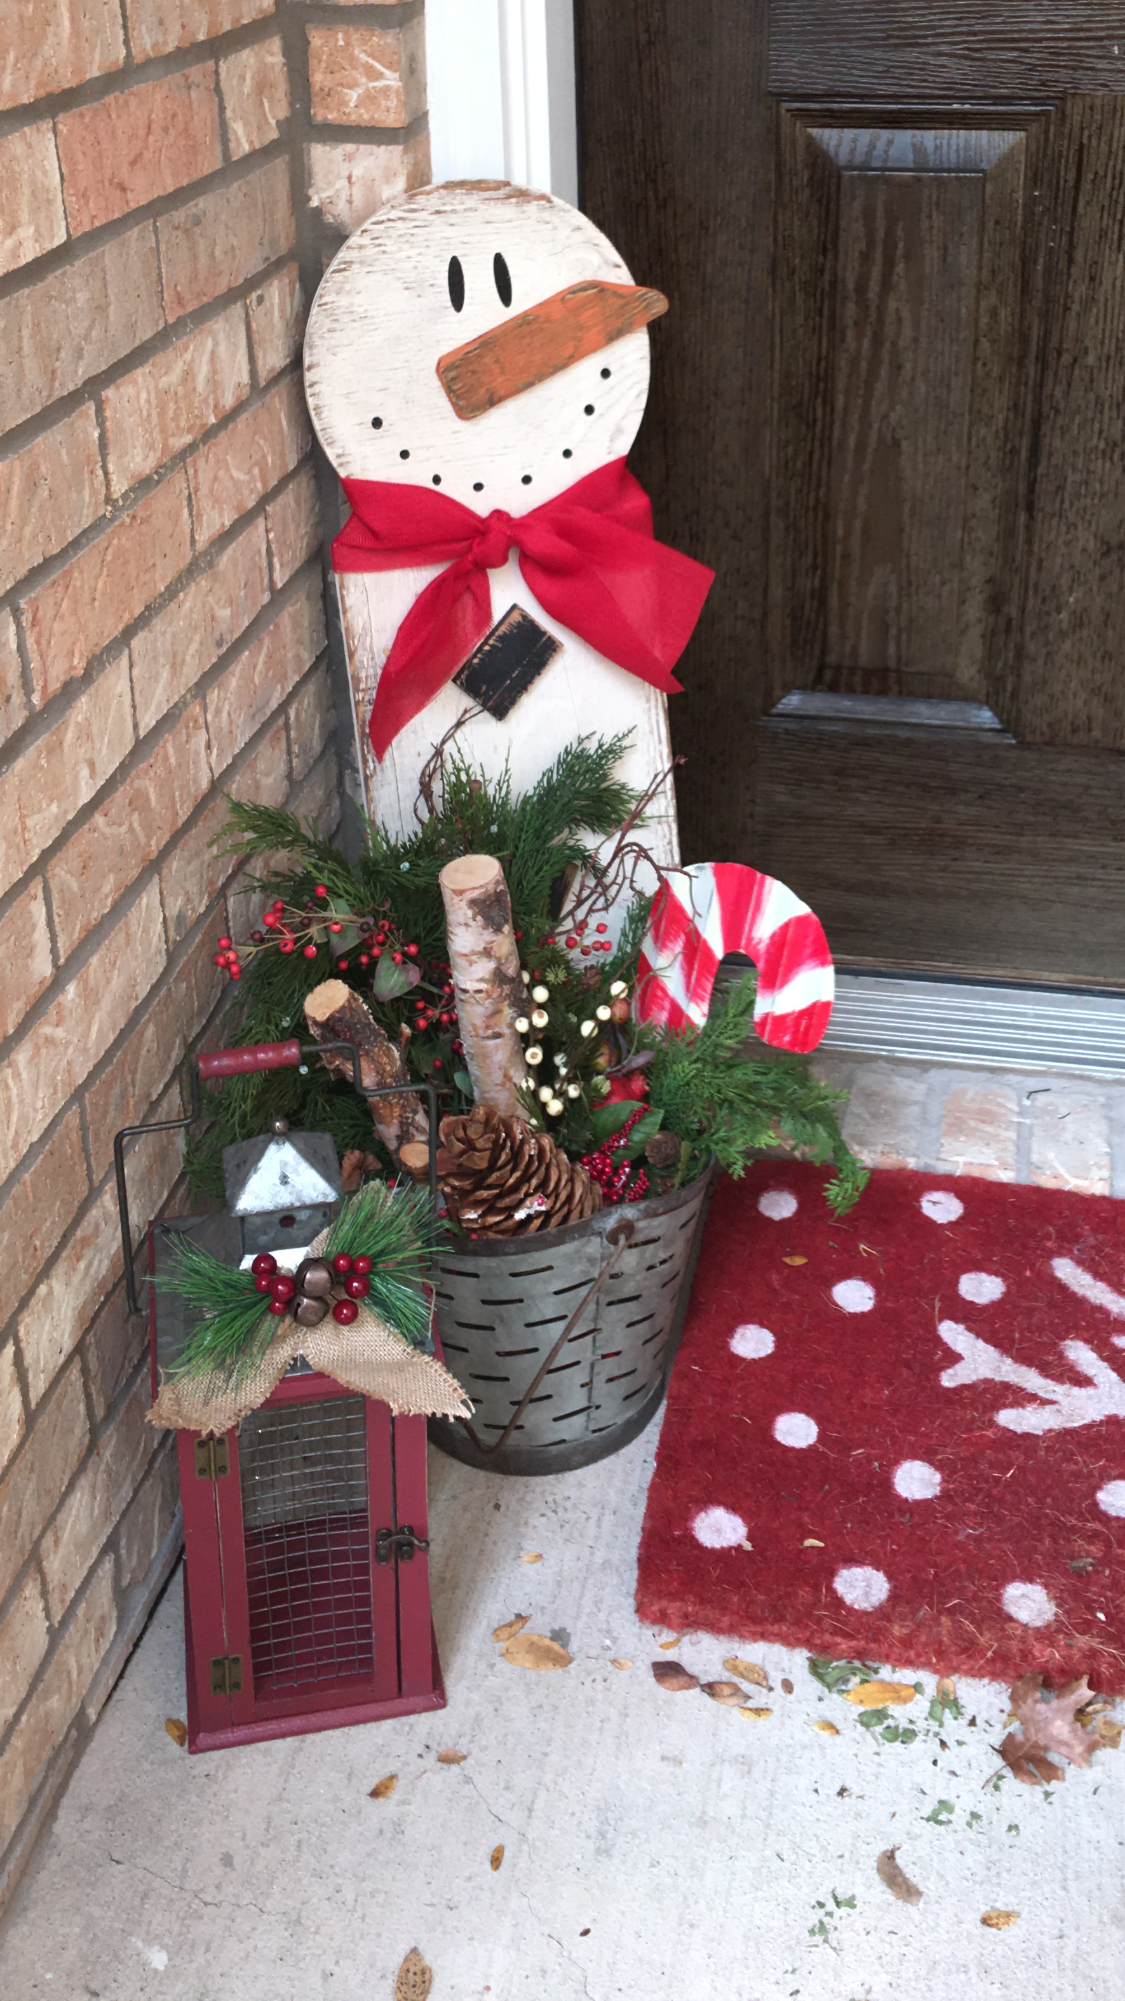 Cute snowman cutout for Christmas entryway! Christmas